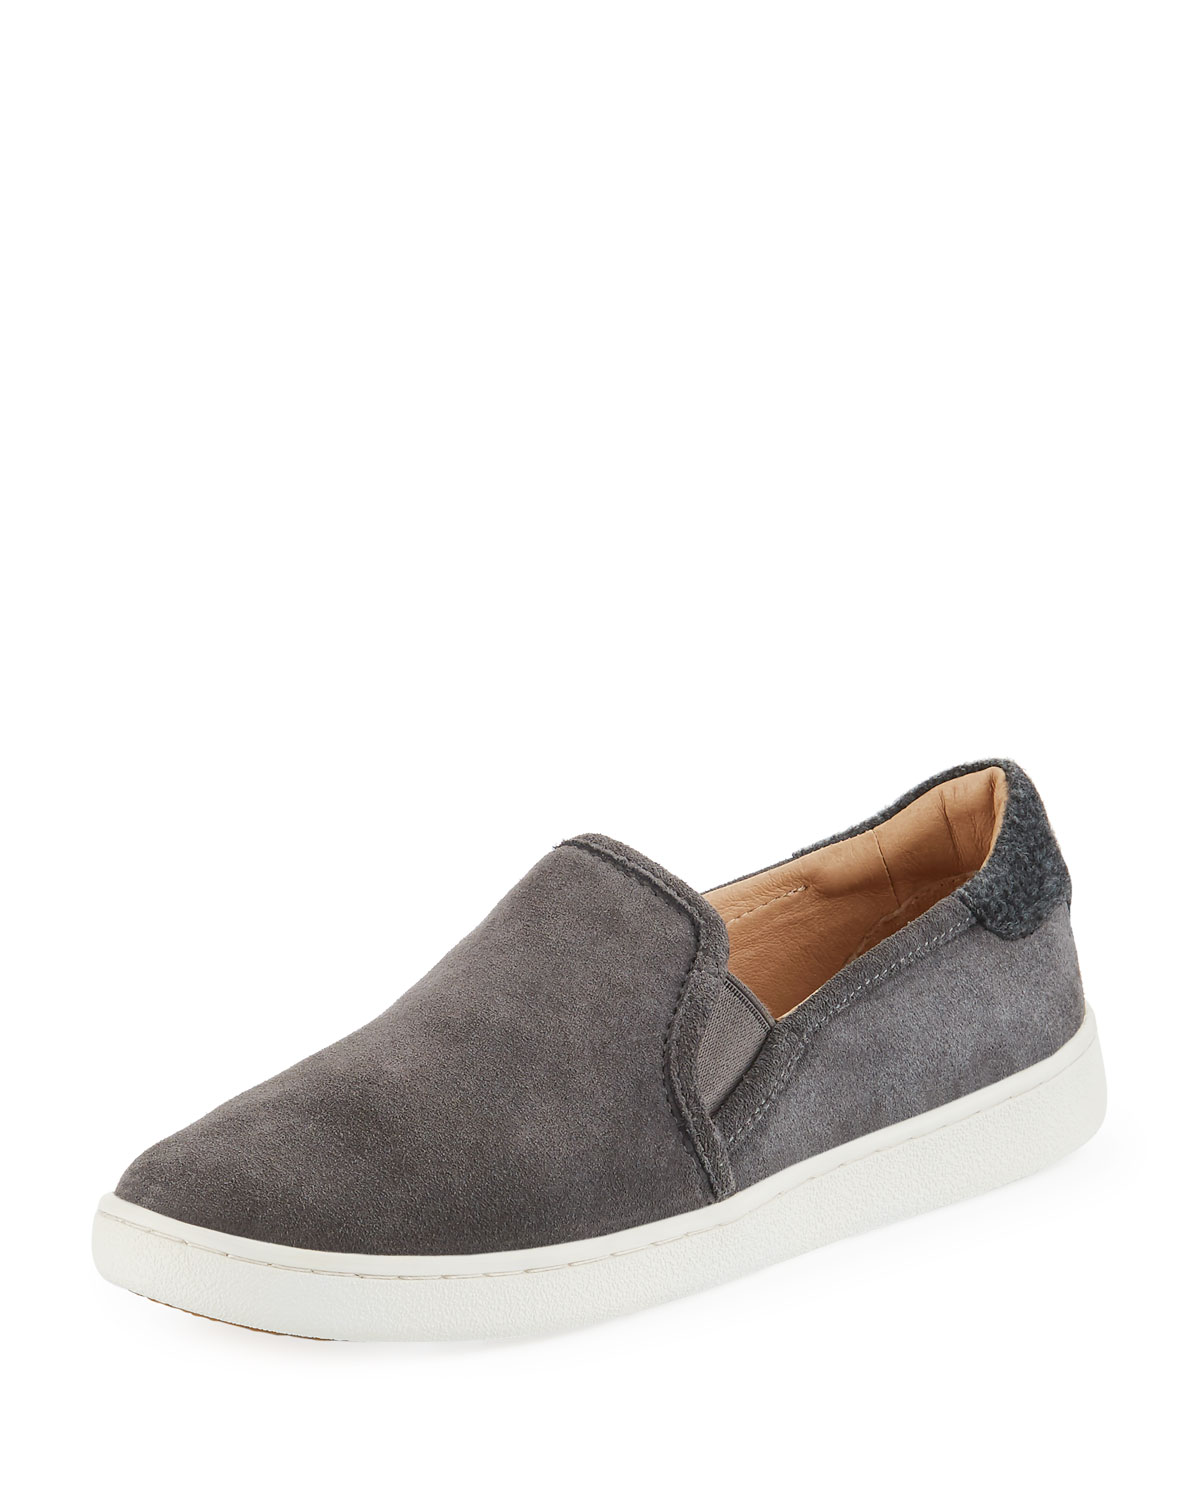 Cas Suede Slip On Sneakers